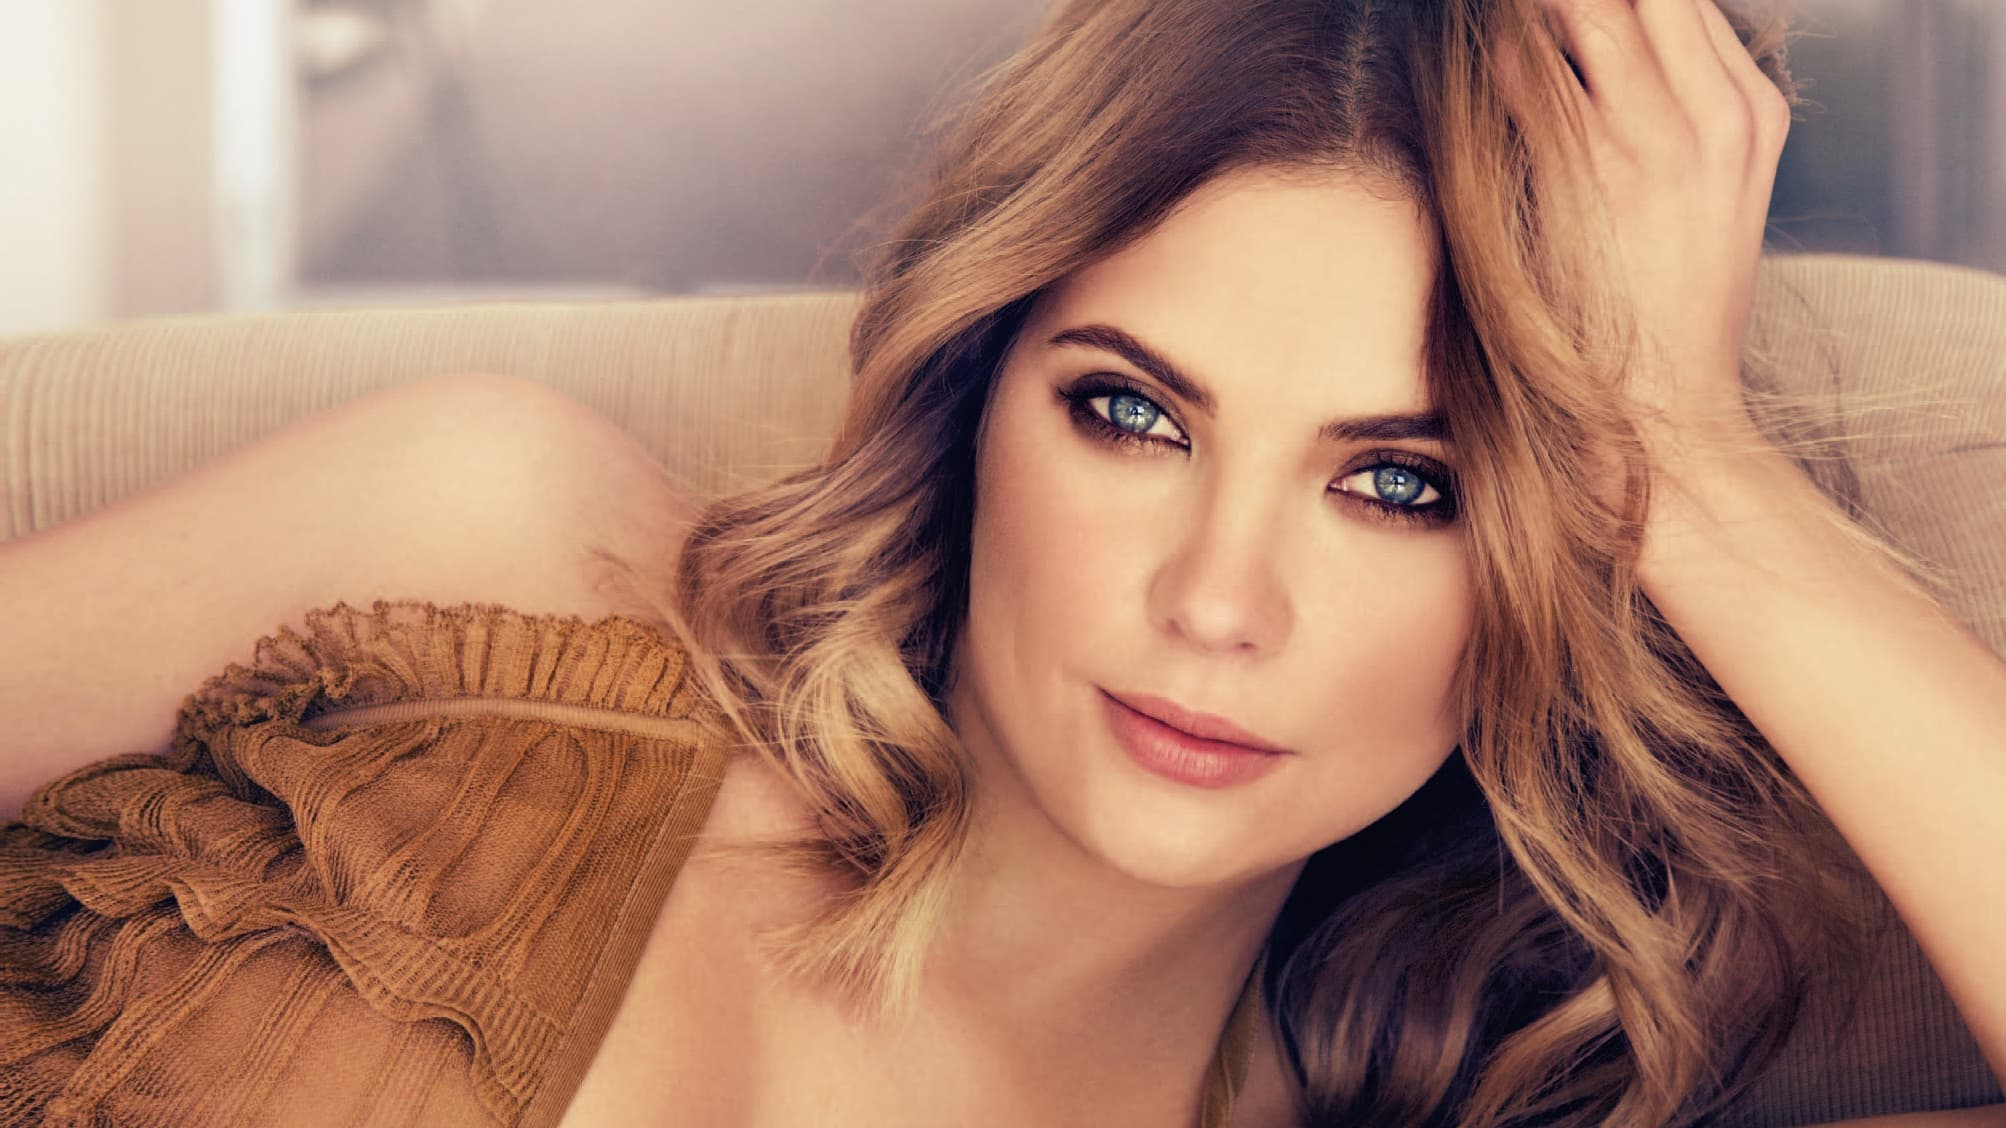 Ashley Benson pictures new, makeup